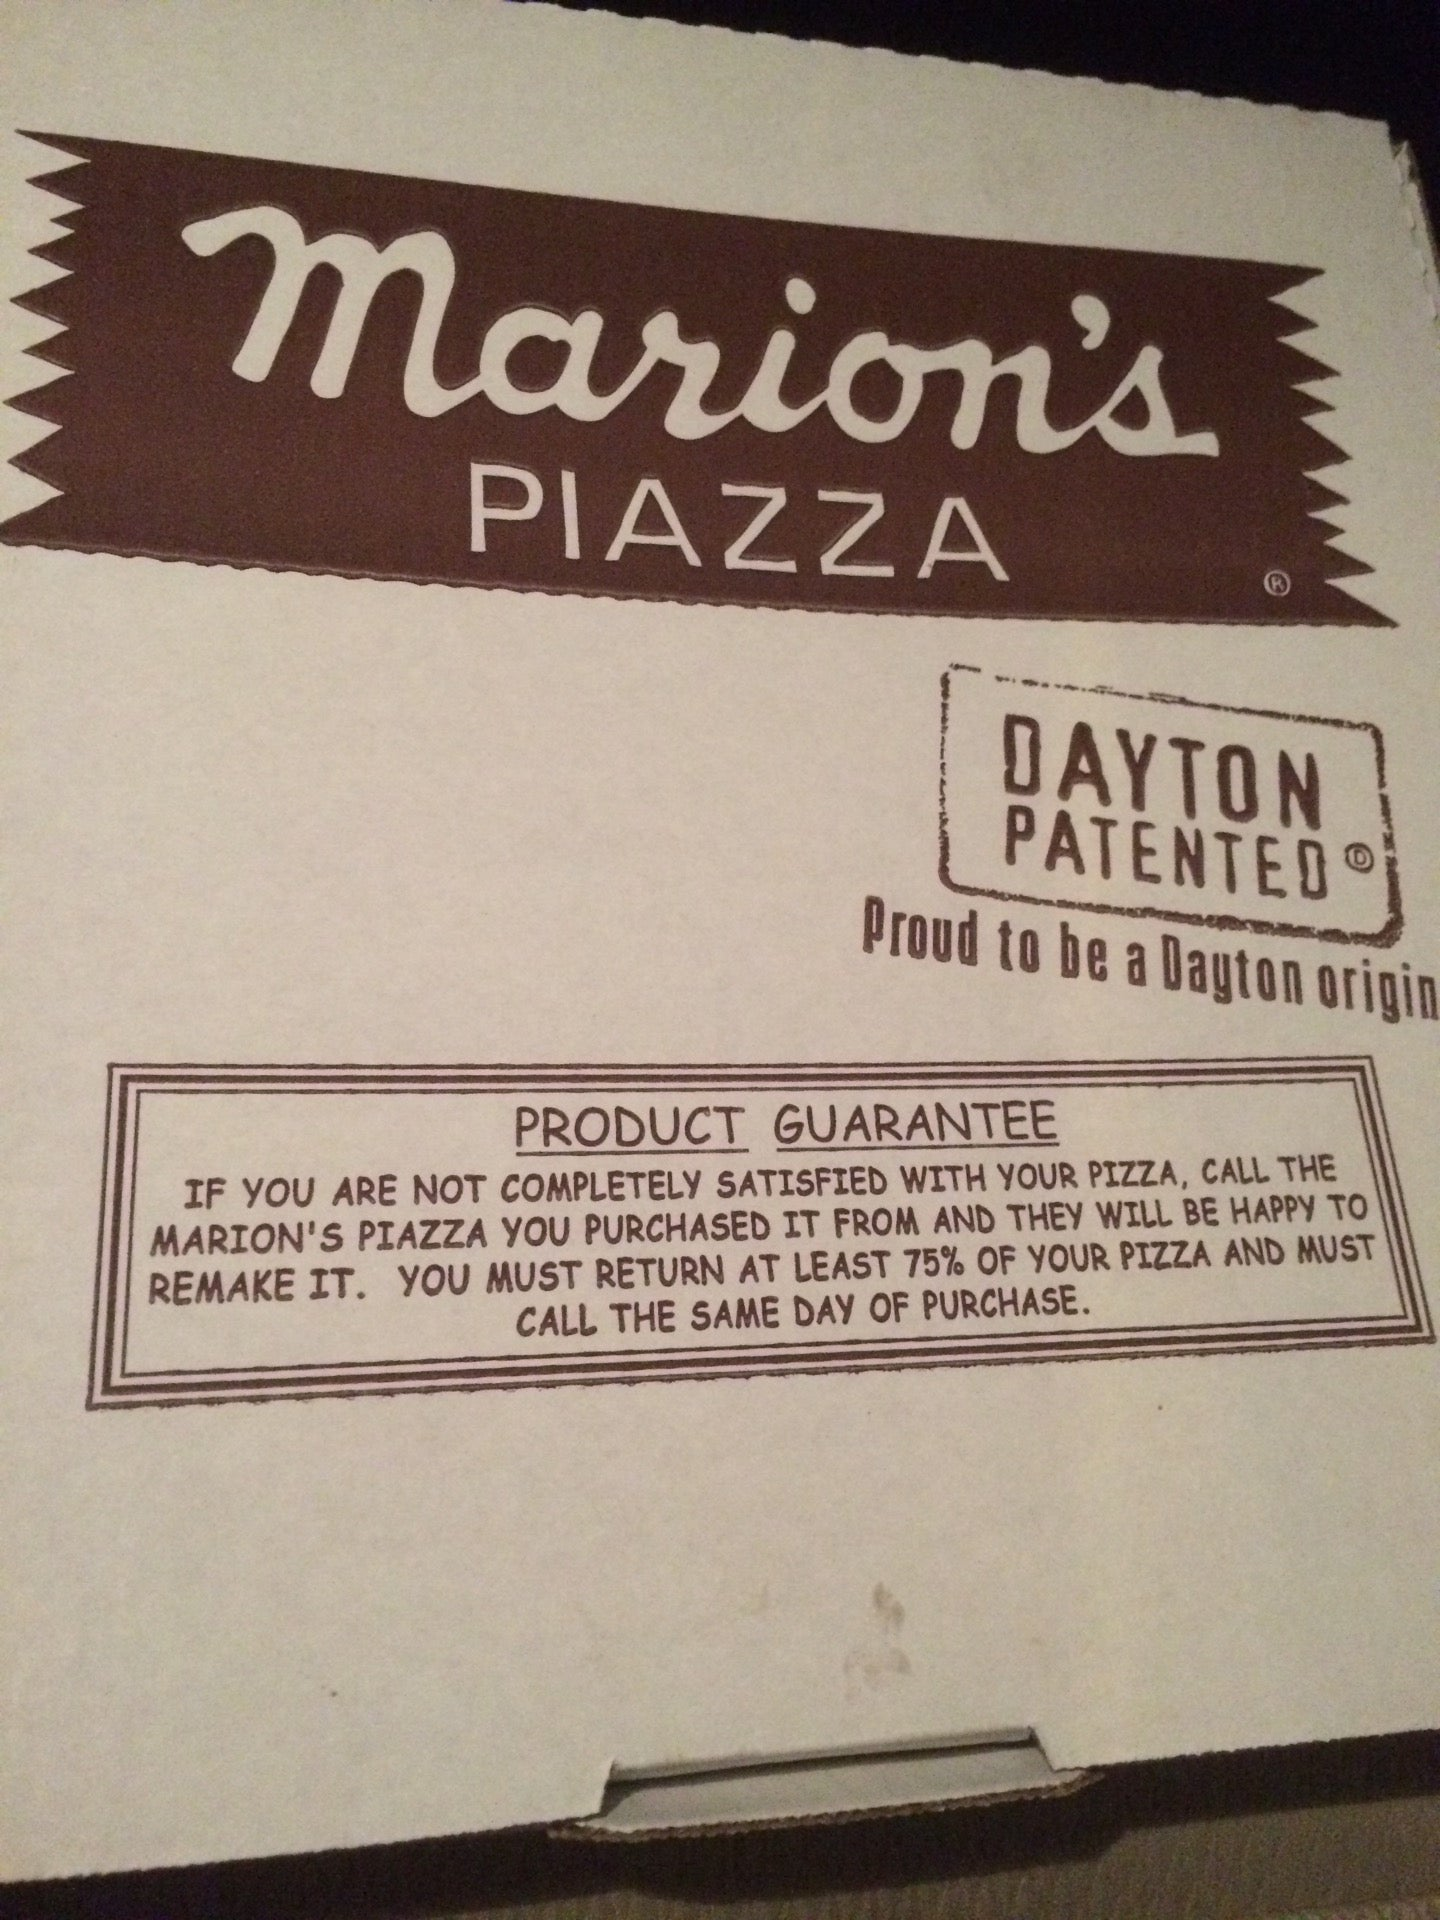 MARION'S PIZZA,